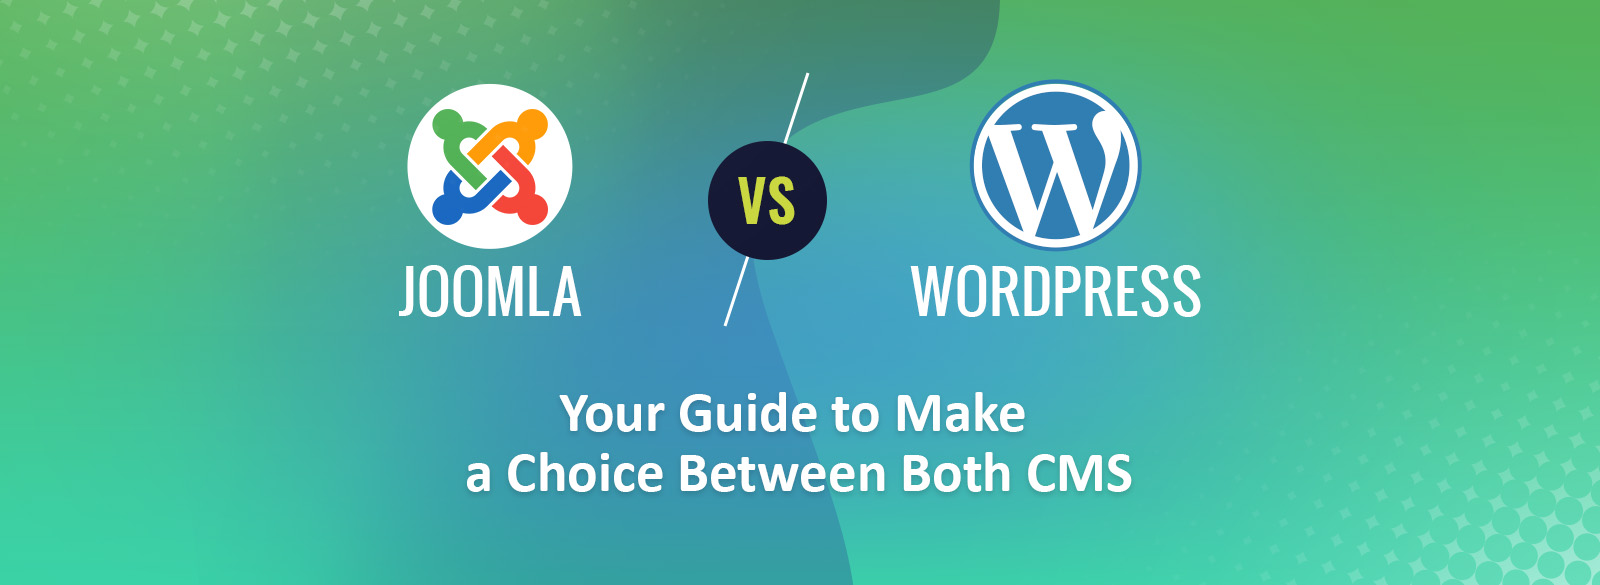 Your Guide to Make a Choice Between Joomla and WordPress